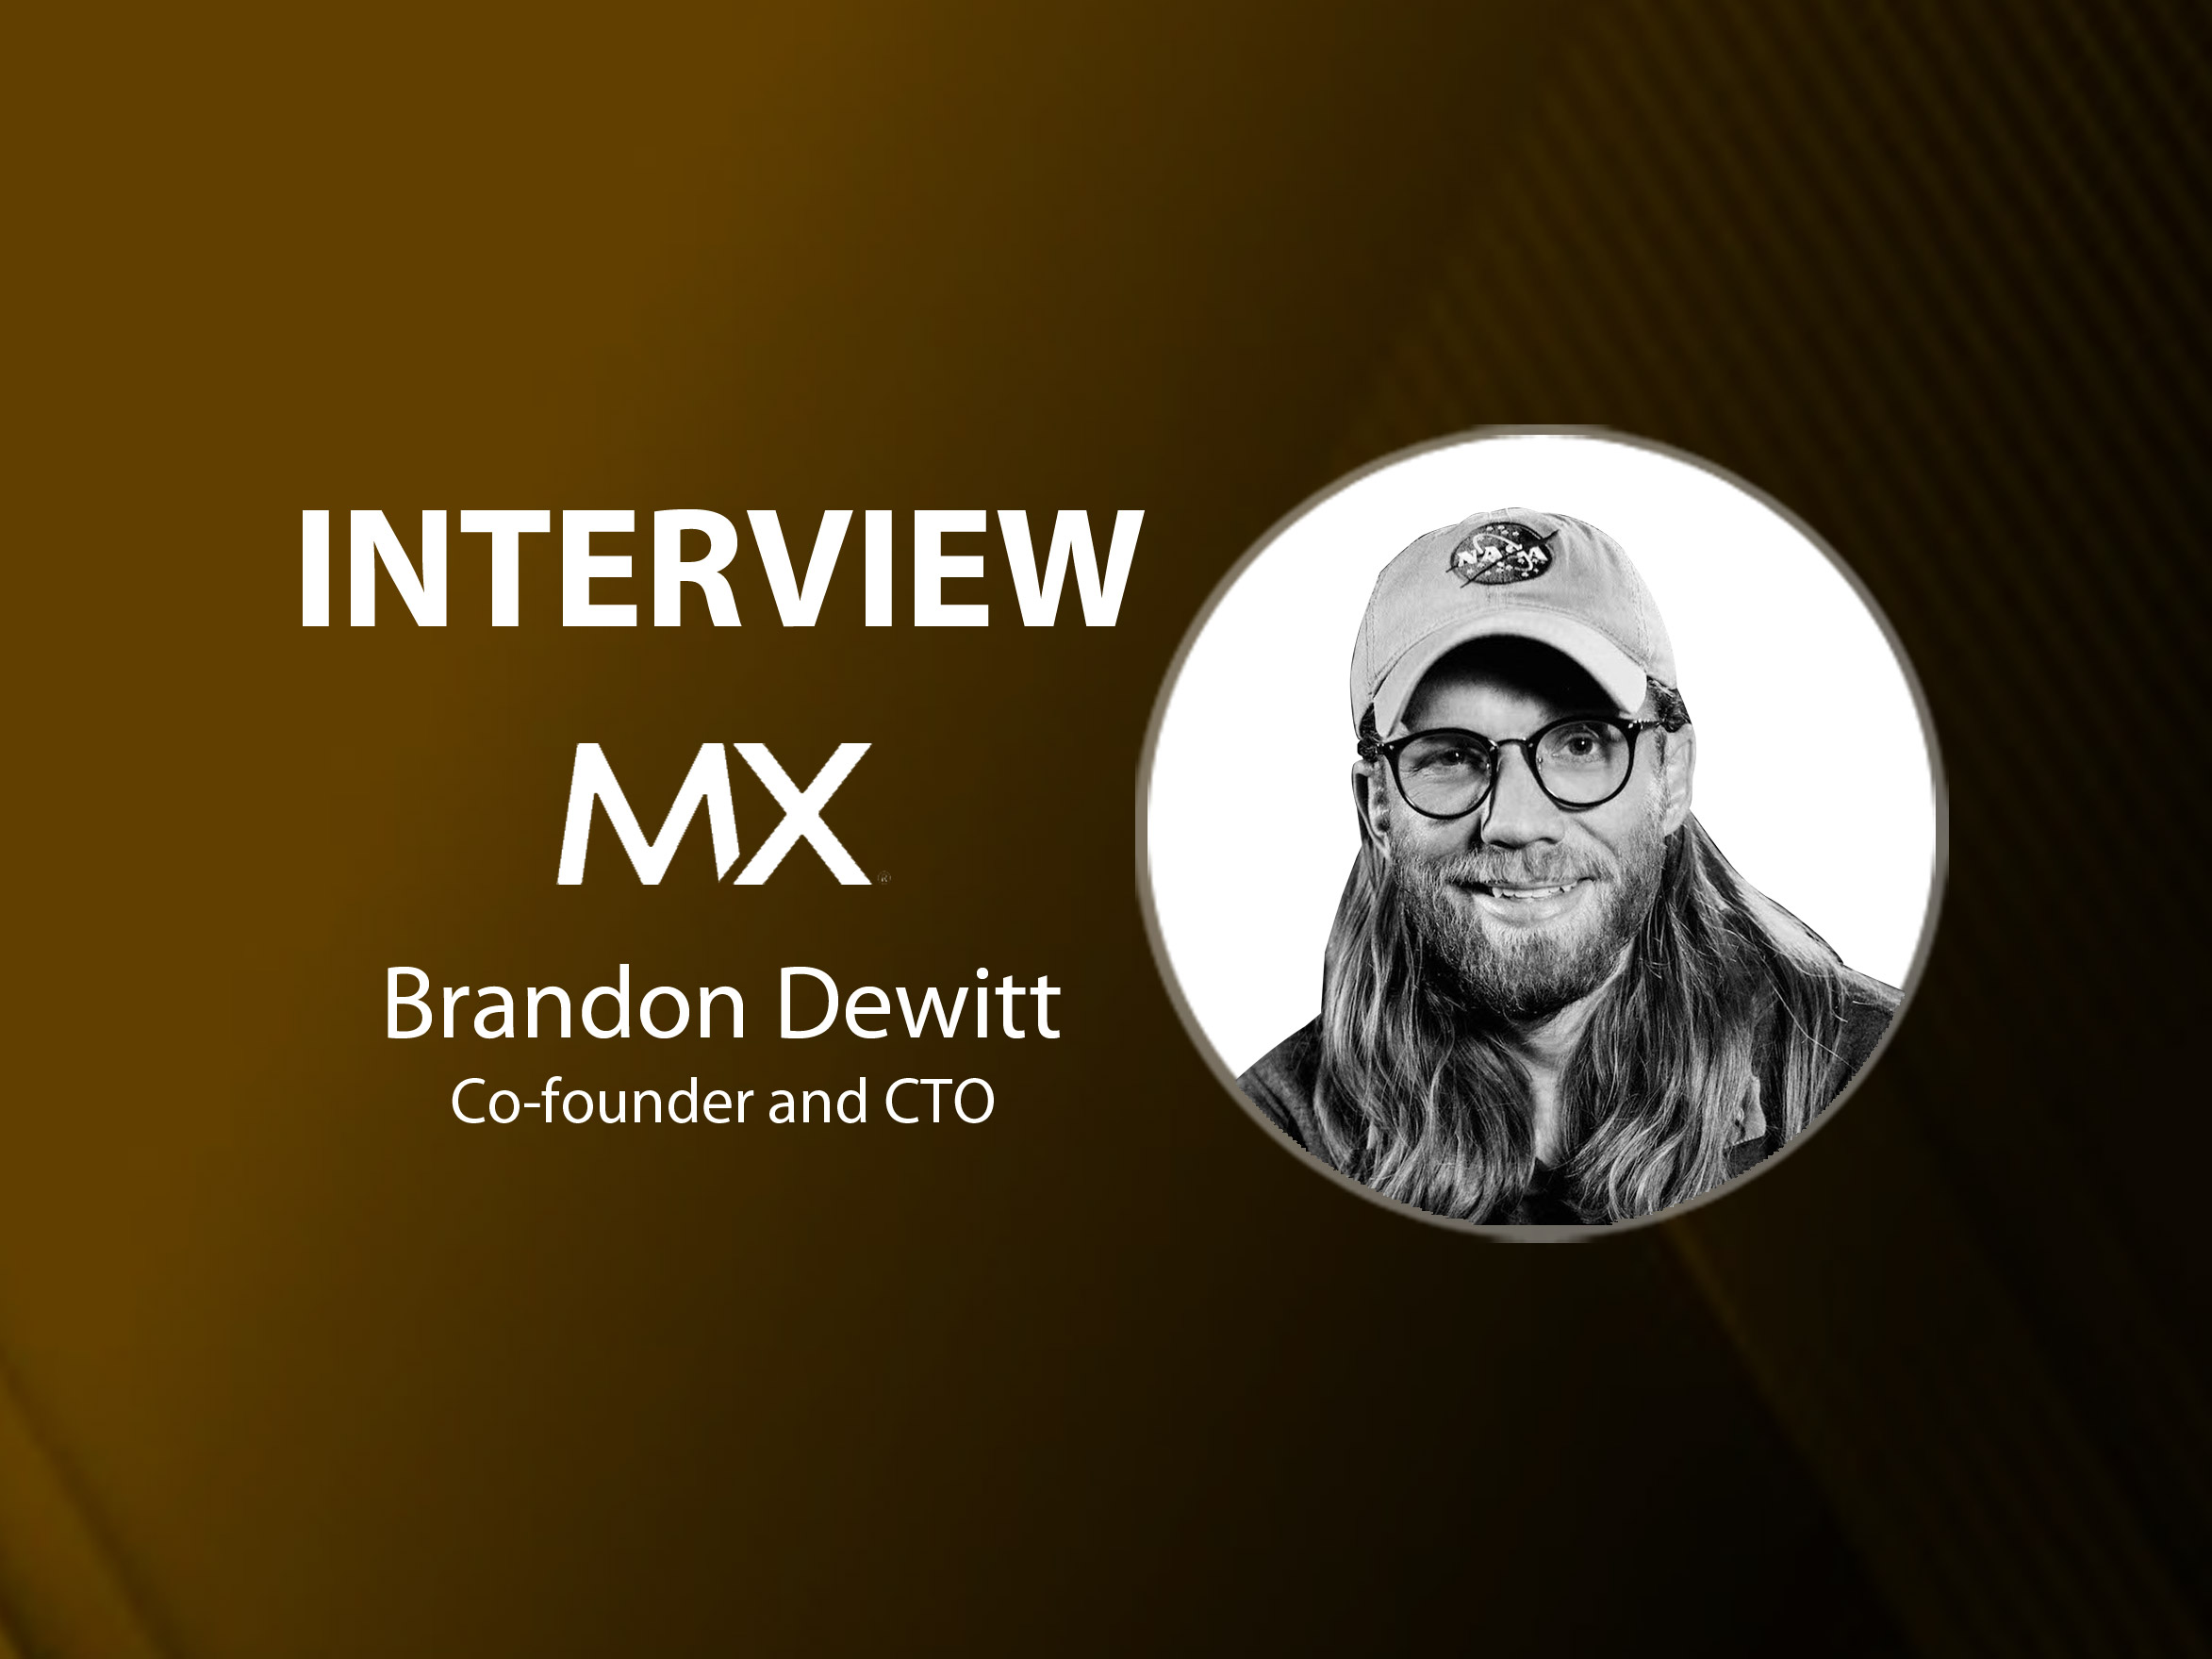 GlobalFintechSeries Interview with Brandon Dewitt, Co-founder and CTO at MX